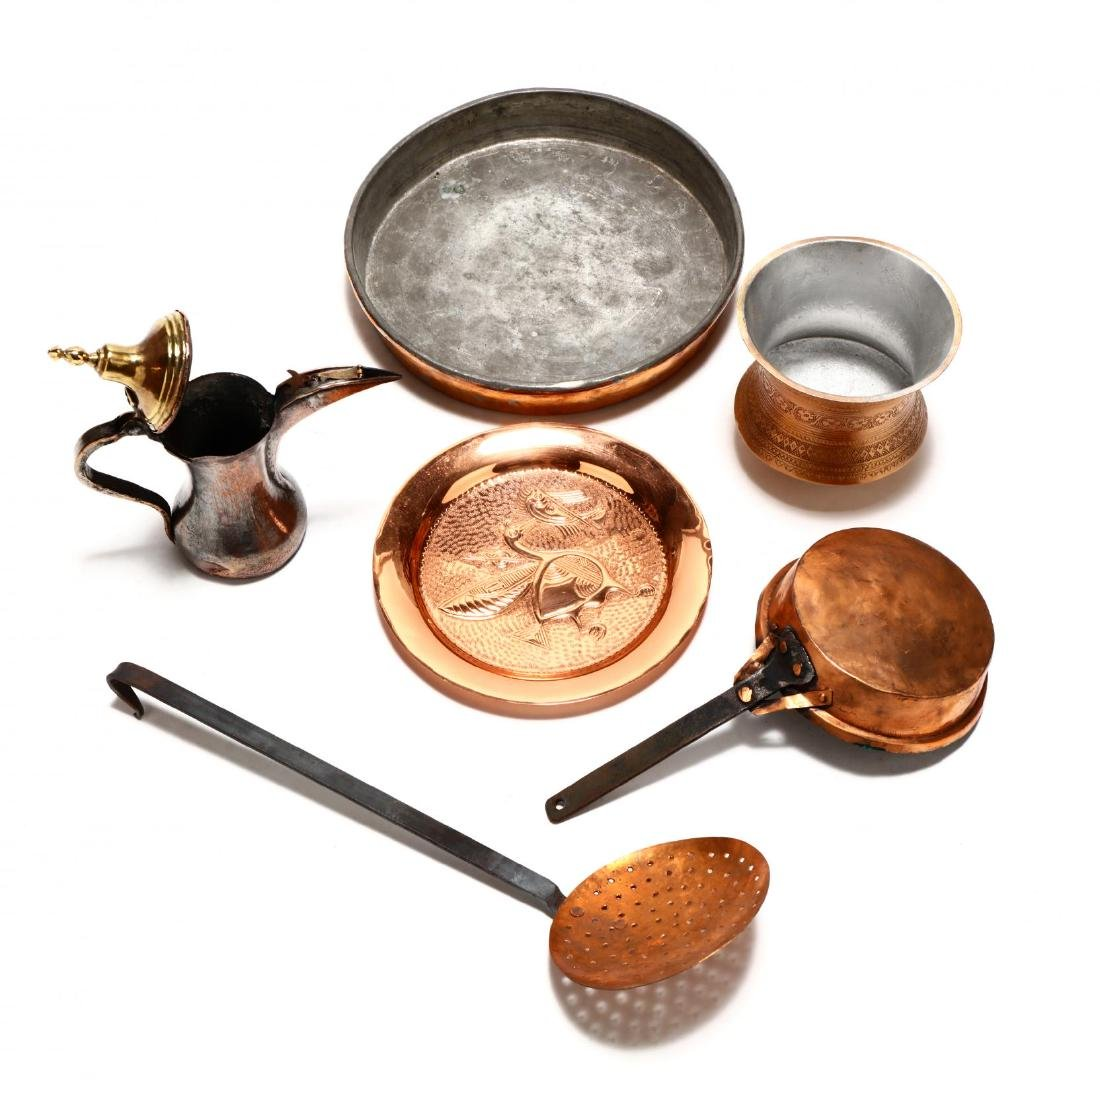 Group of Copper and Metal Kitchenware - 4